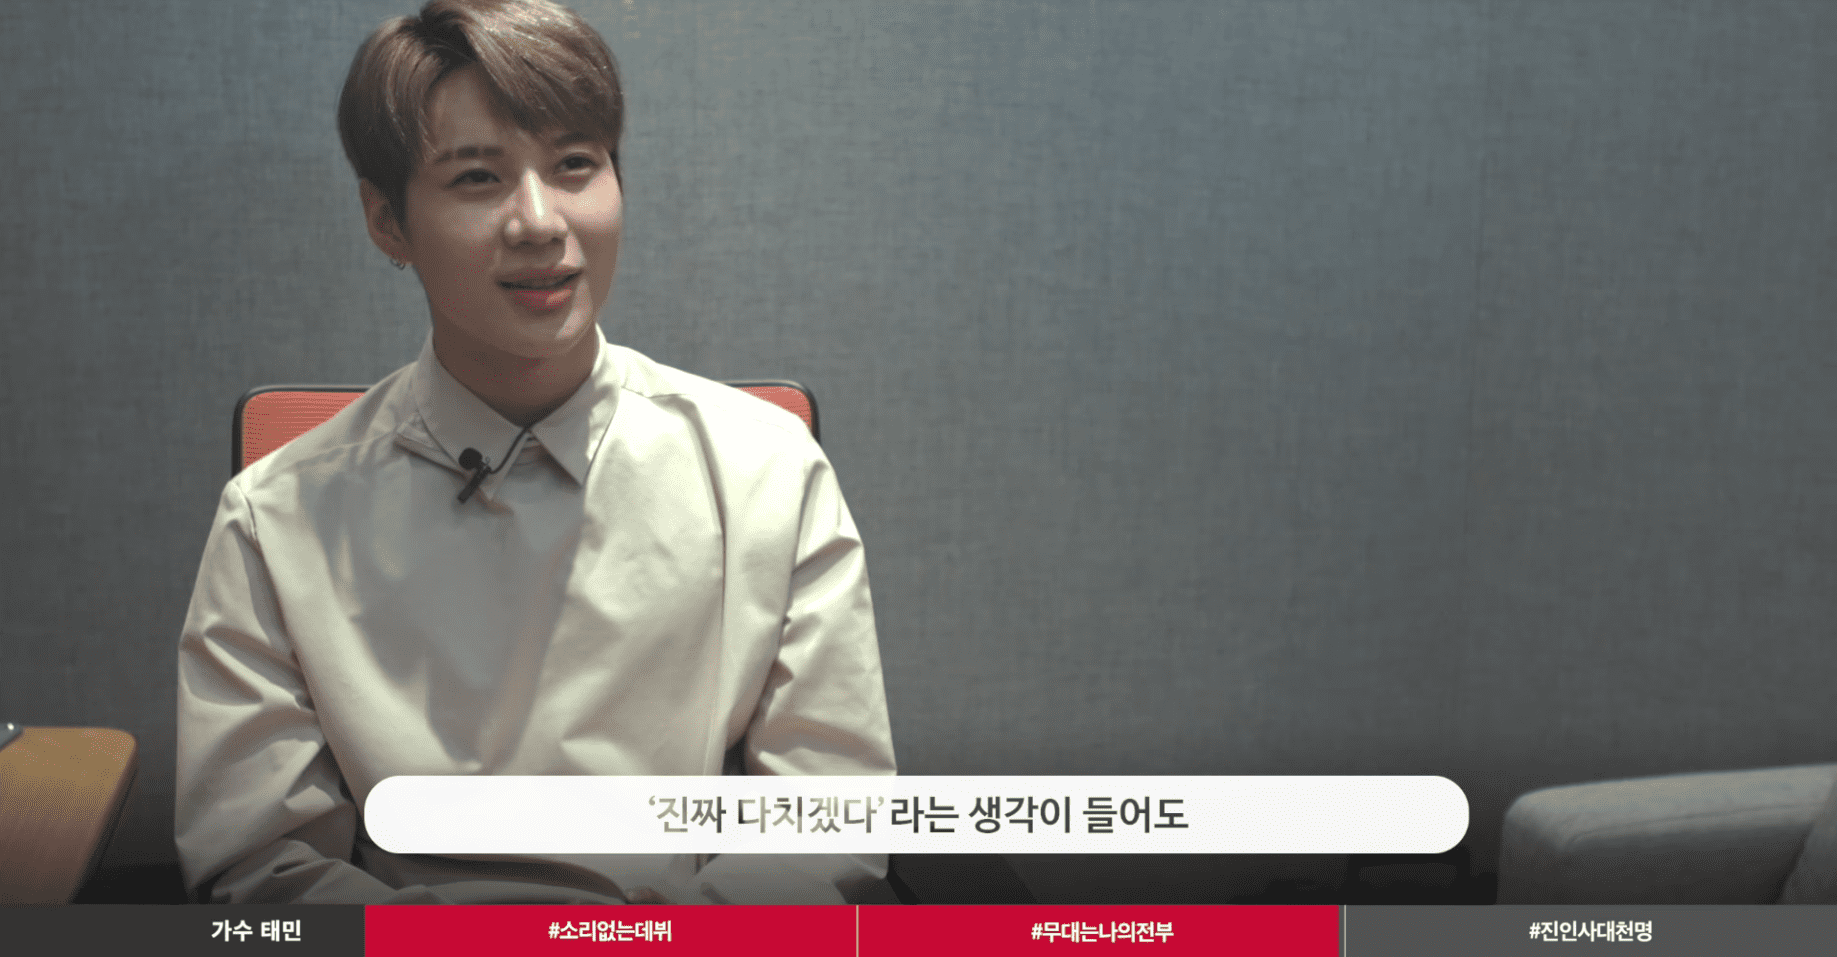 SHINee's Taemin Talks About His Struggles To Improve As A Singer